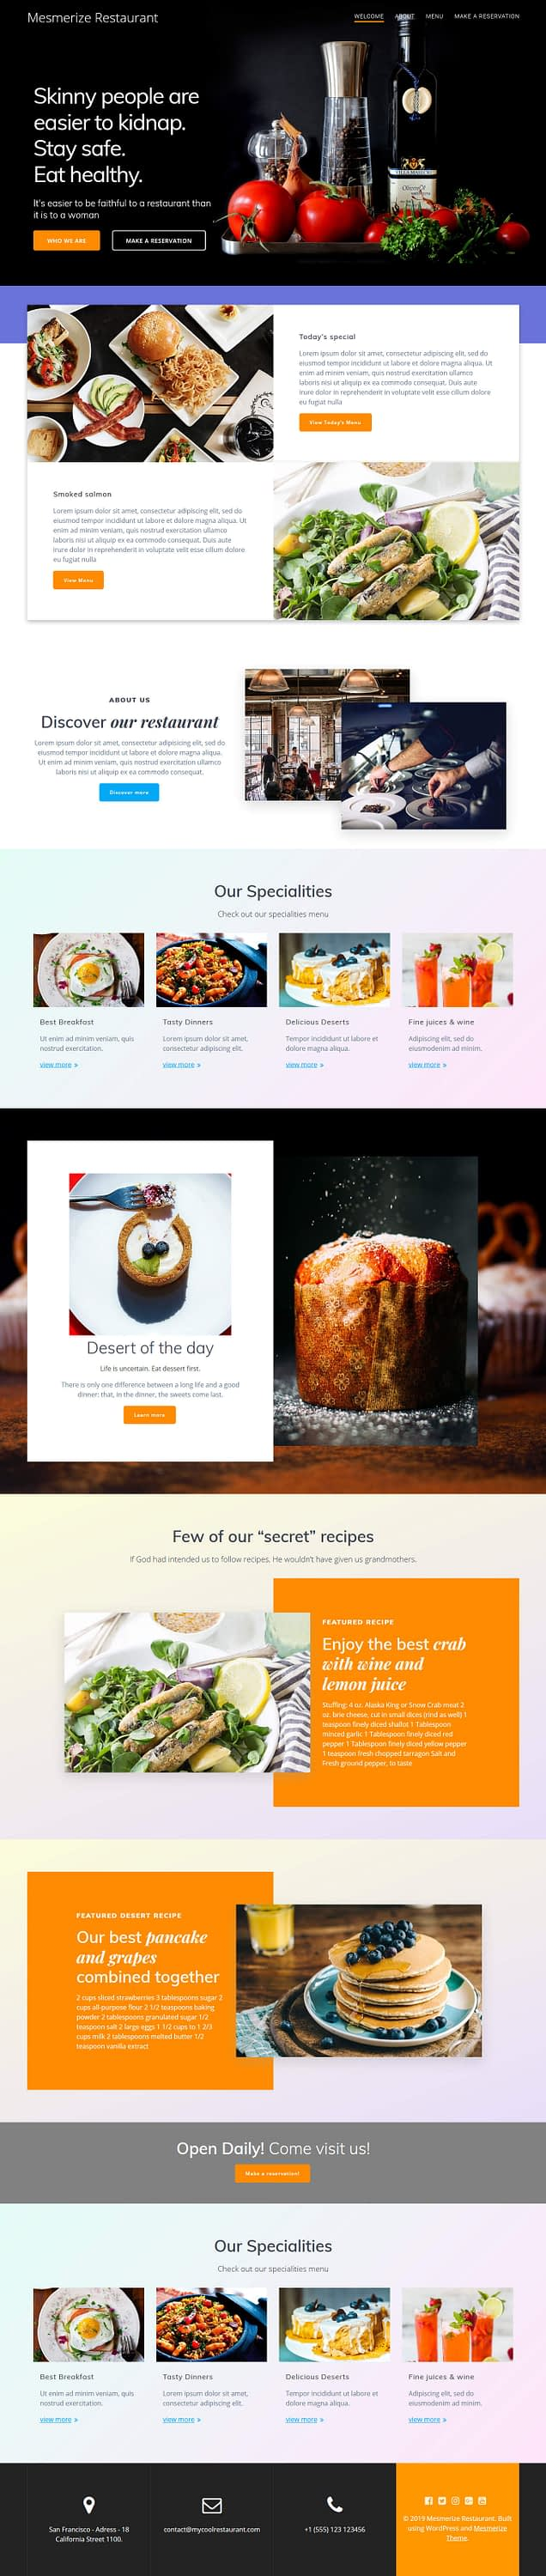 mesmerize - 15+ Best Free Multipurpose WordPress Themes and Templates